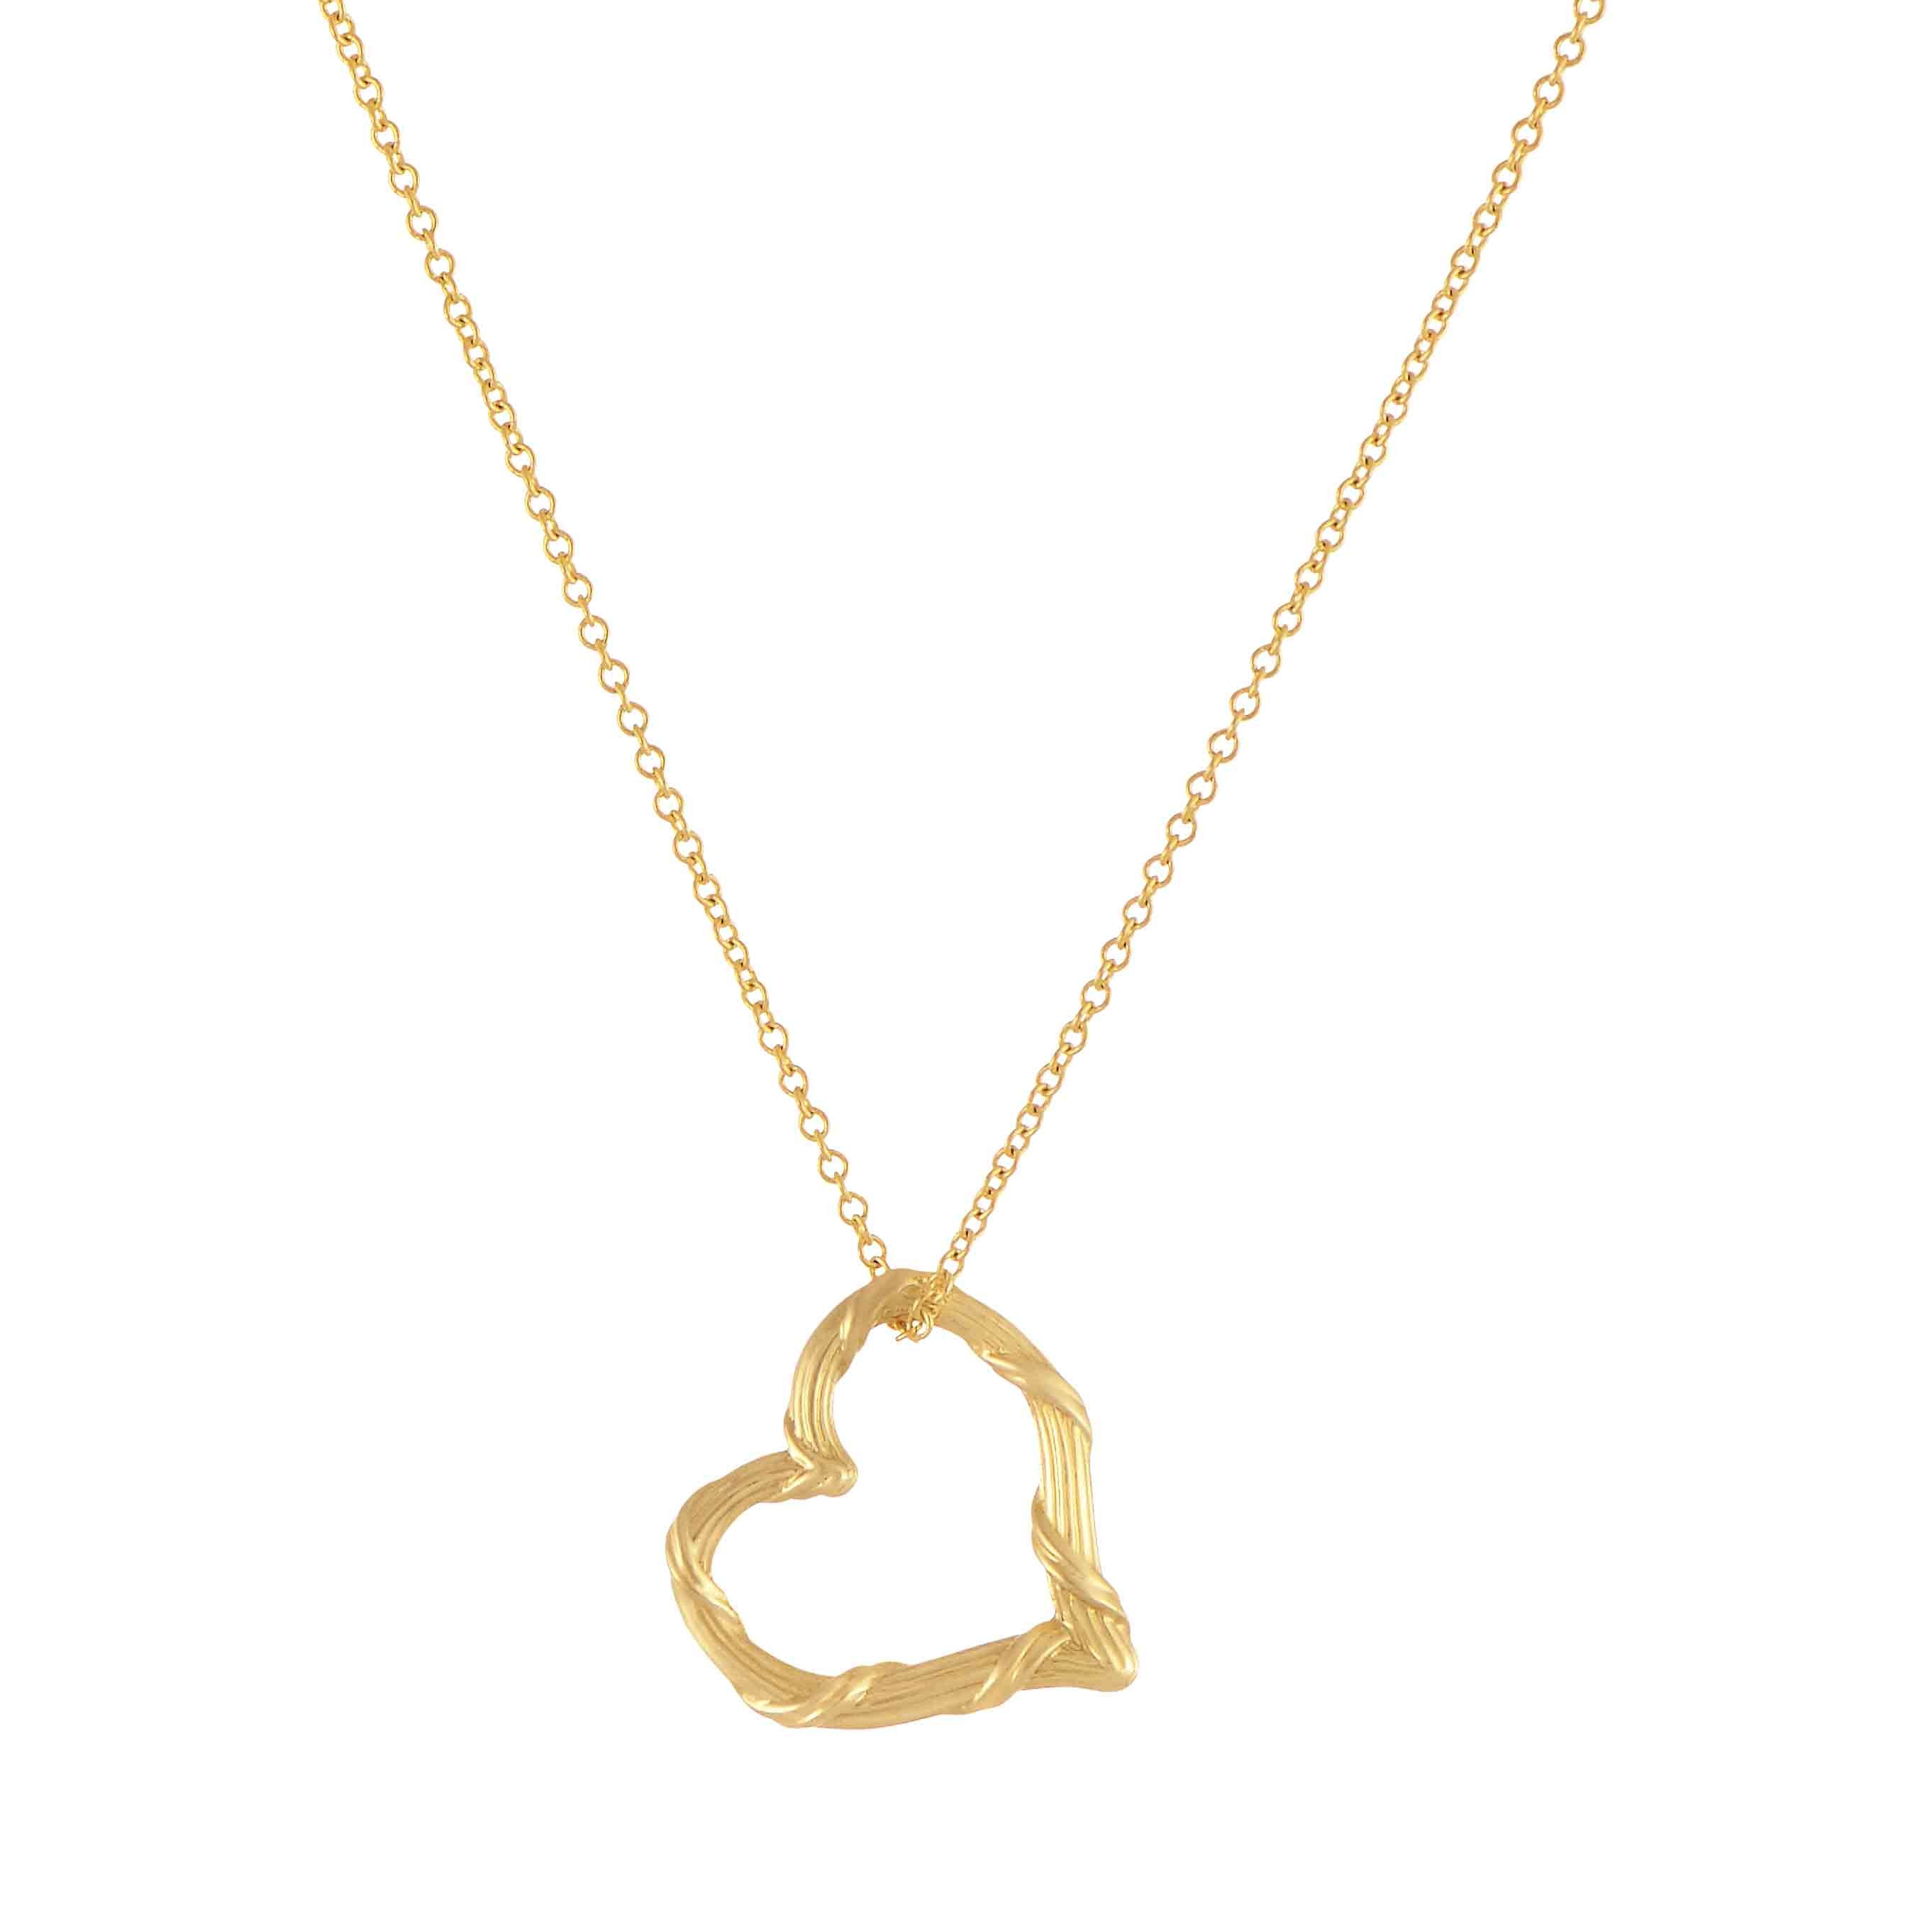 Peter Thomas Roth Heritage Floating Heart Pendant Necklace In 18k Inside Most Up To Date Joined Hearts Chain Necklaces (View 3 of 25)